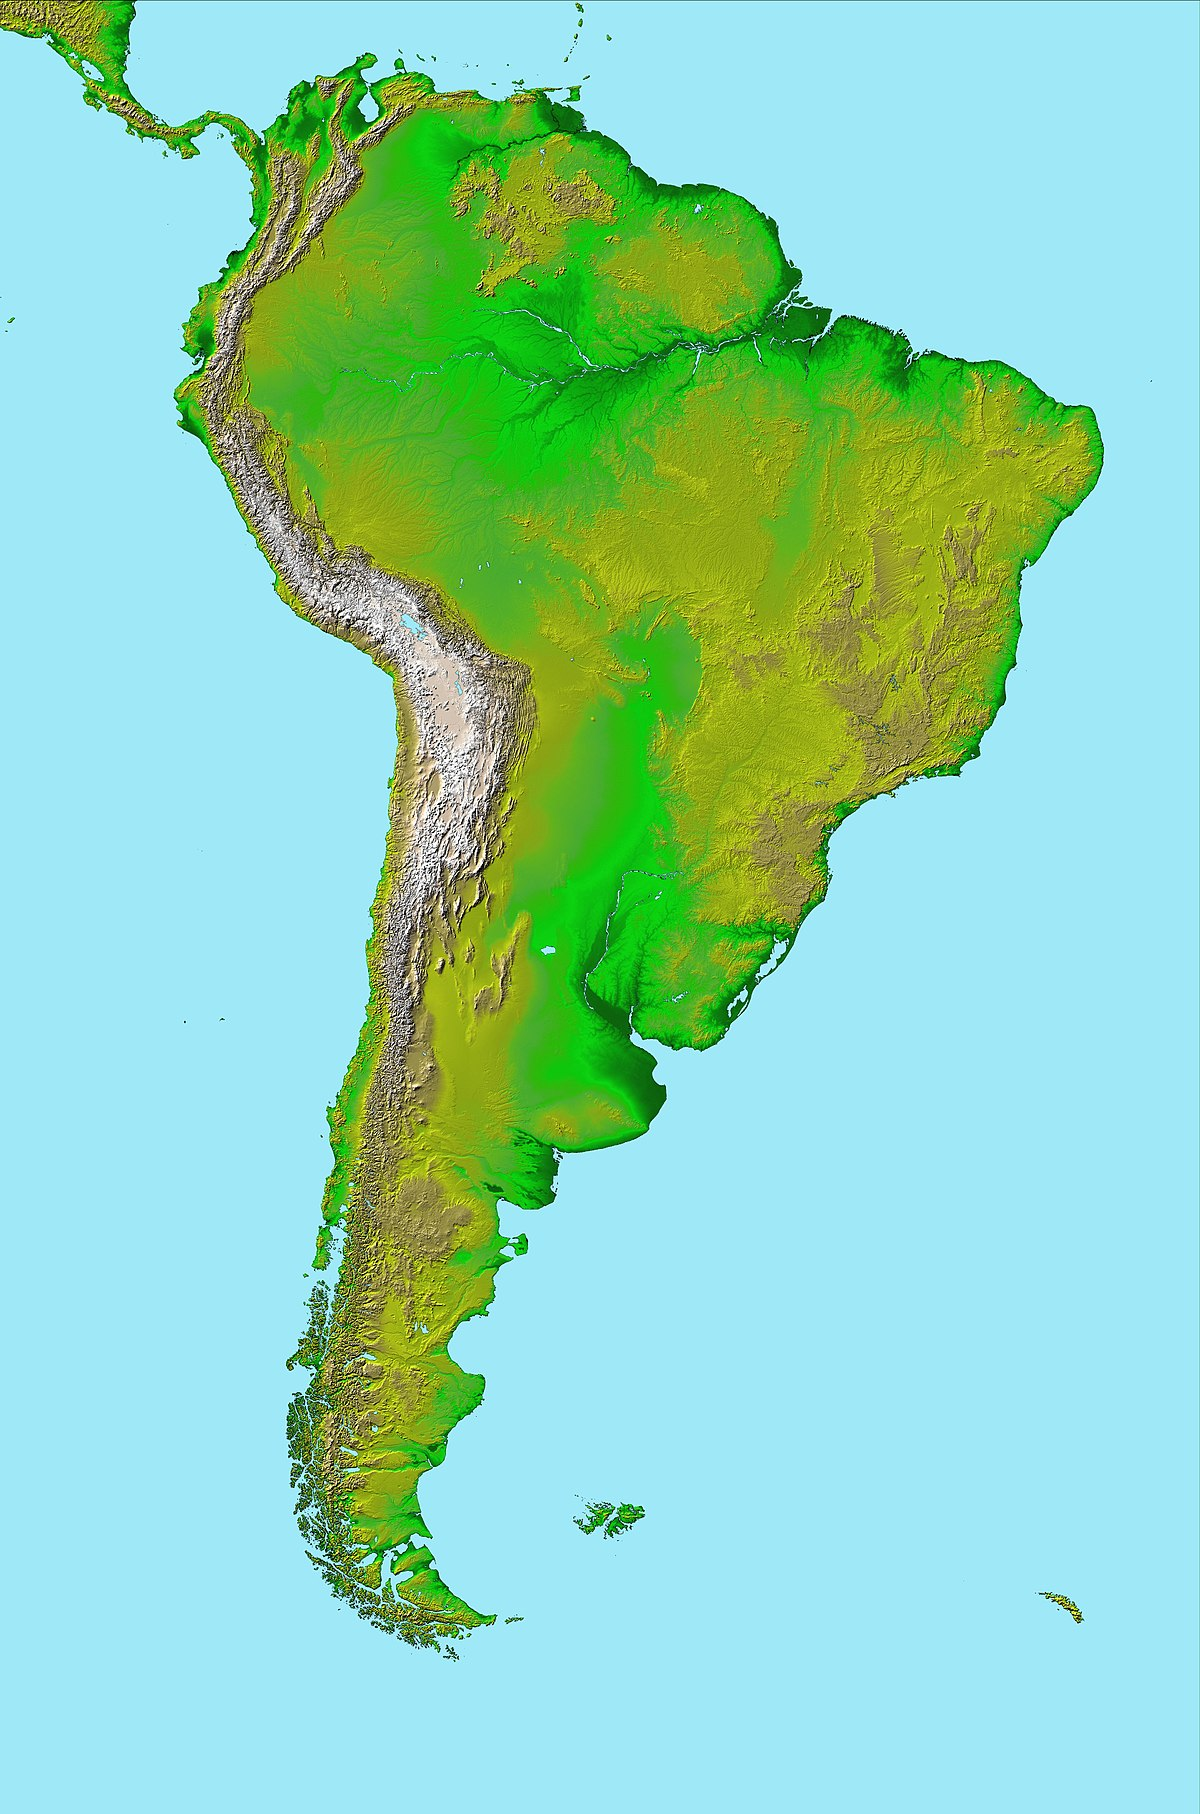 1200px-Topographic_map_of_South_America.jpg